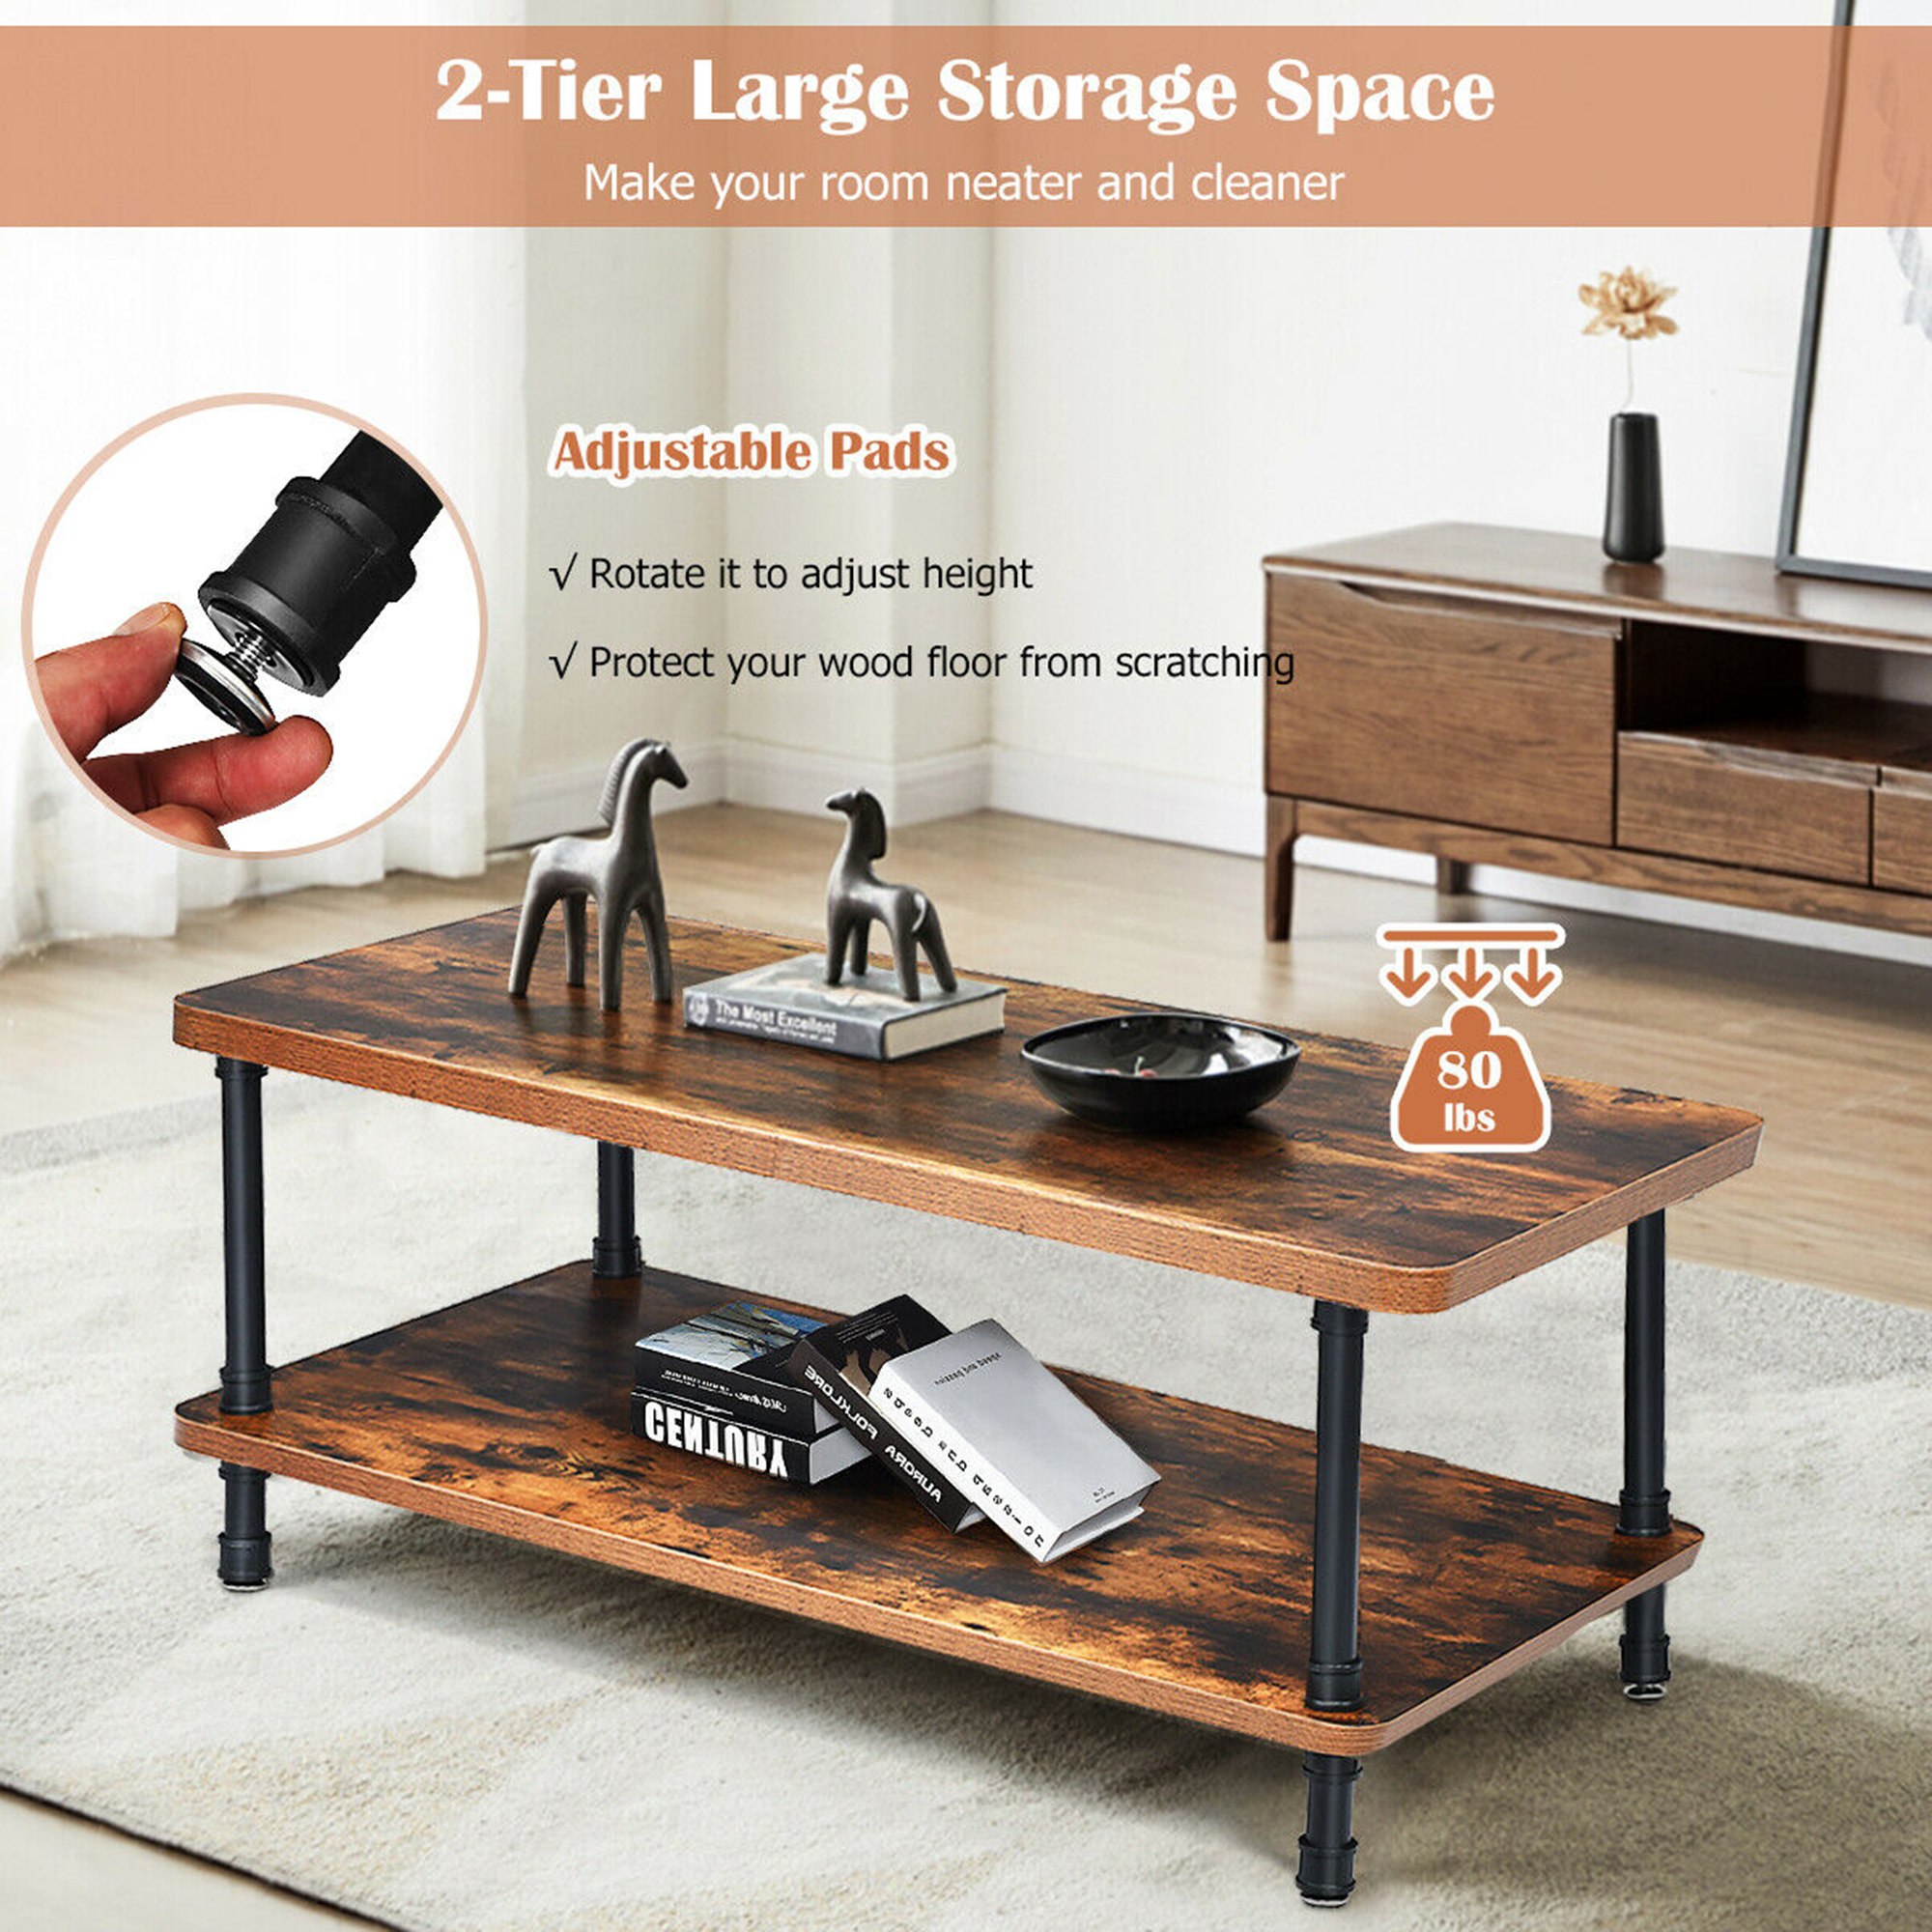 gymax industrial coffee table rustic accent table storage shelf living room furniture